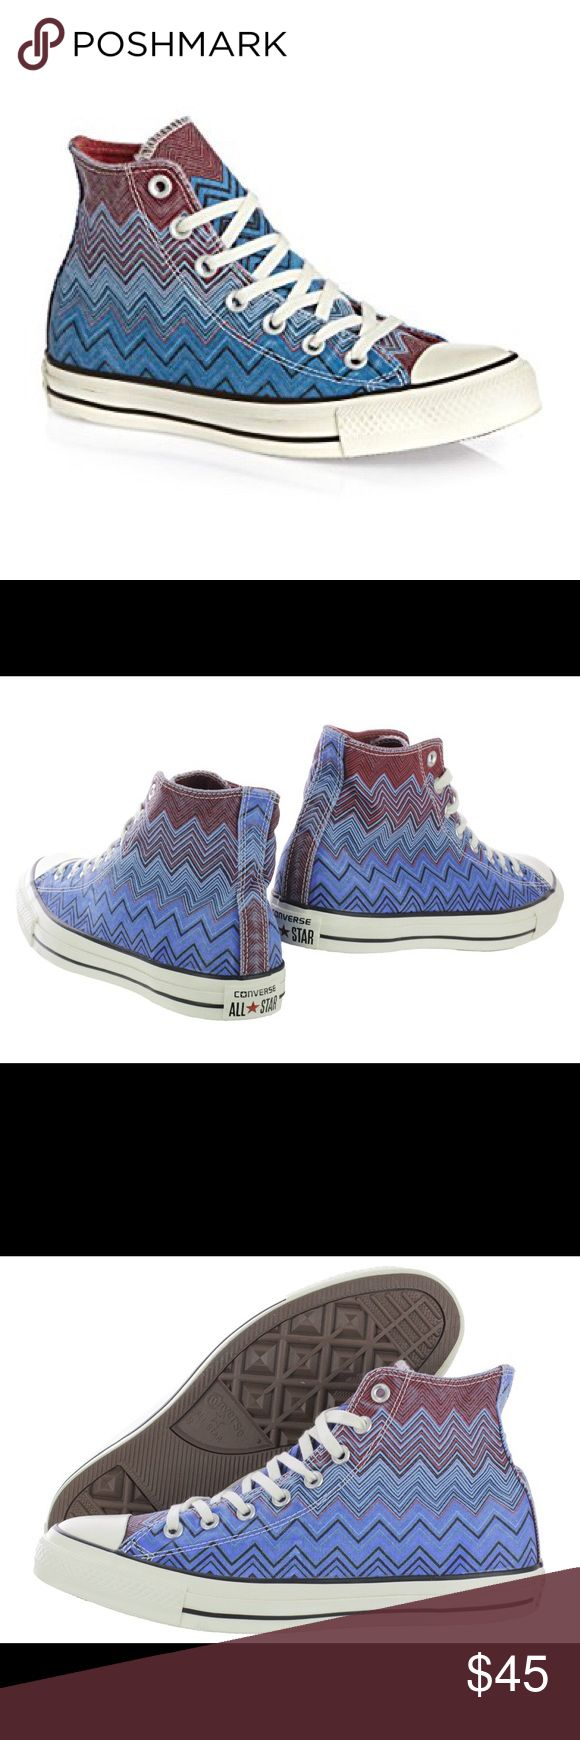 FLASH SALE Converse all Star Missoni shoes Brand new with box. Ct hi color: ocean/cas ocean/ casion. Womens Converse Shoes Sneakers